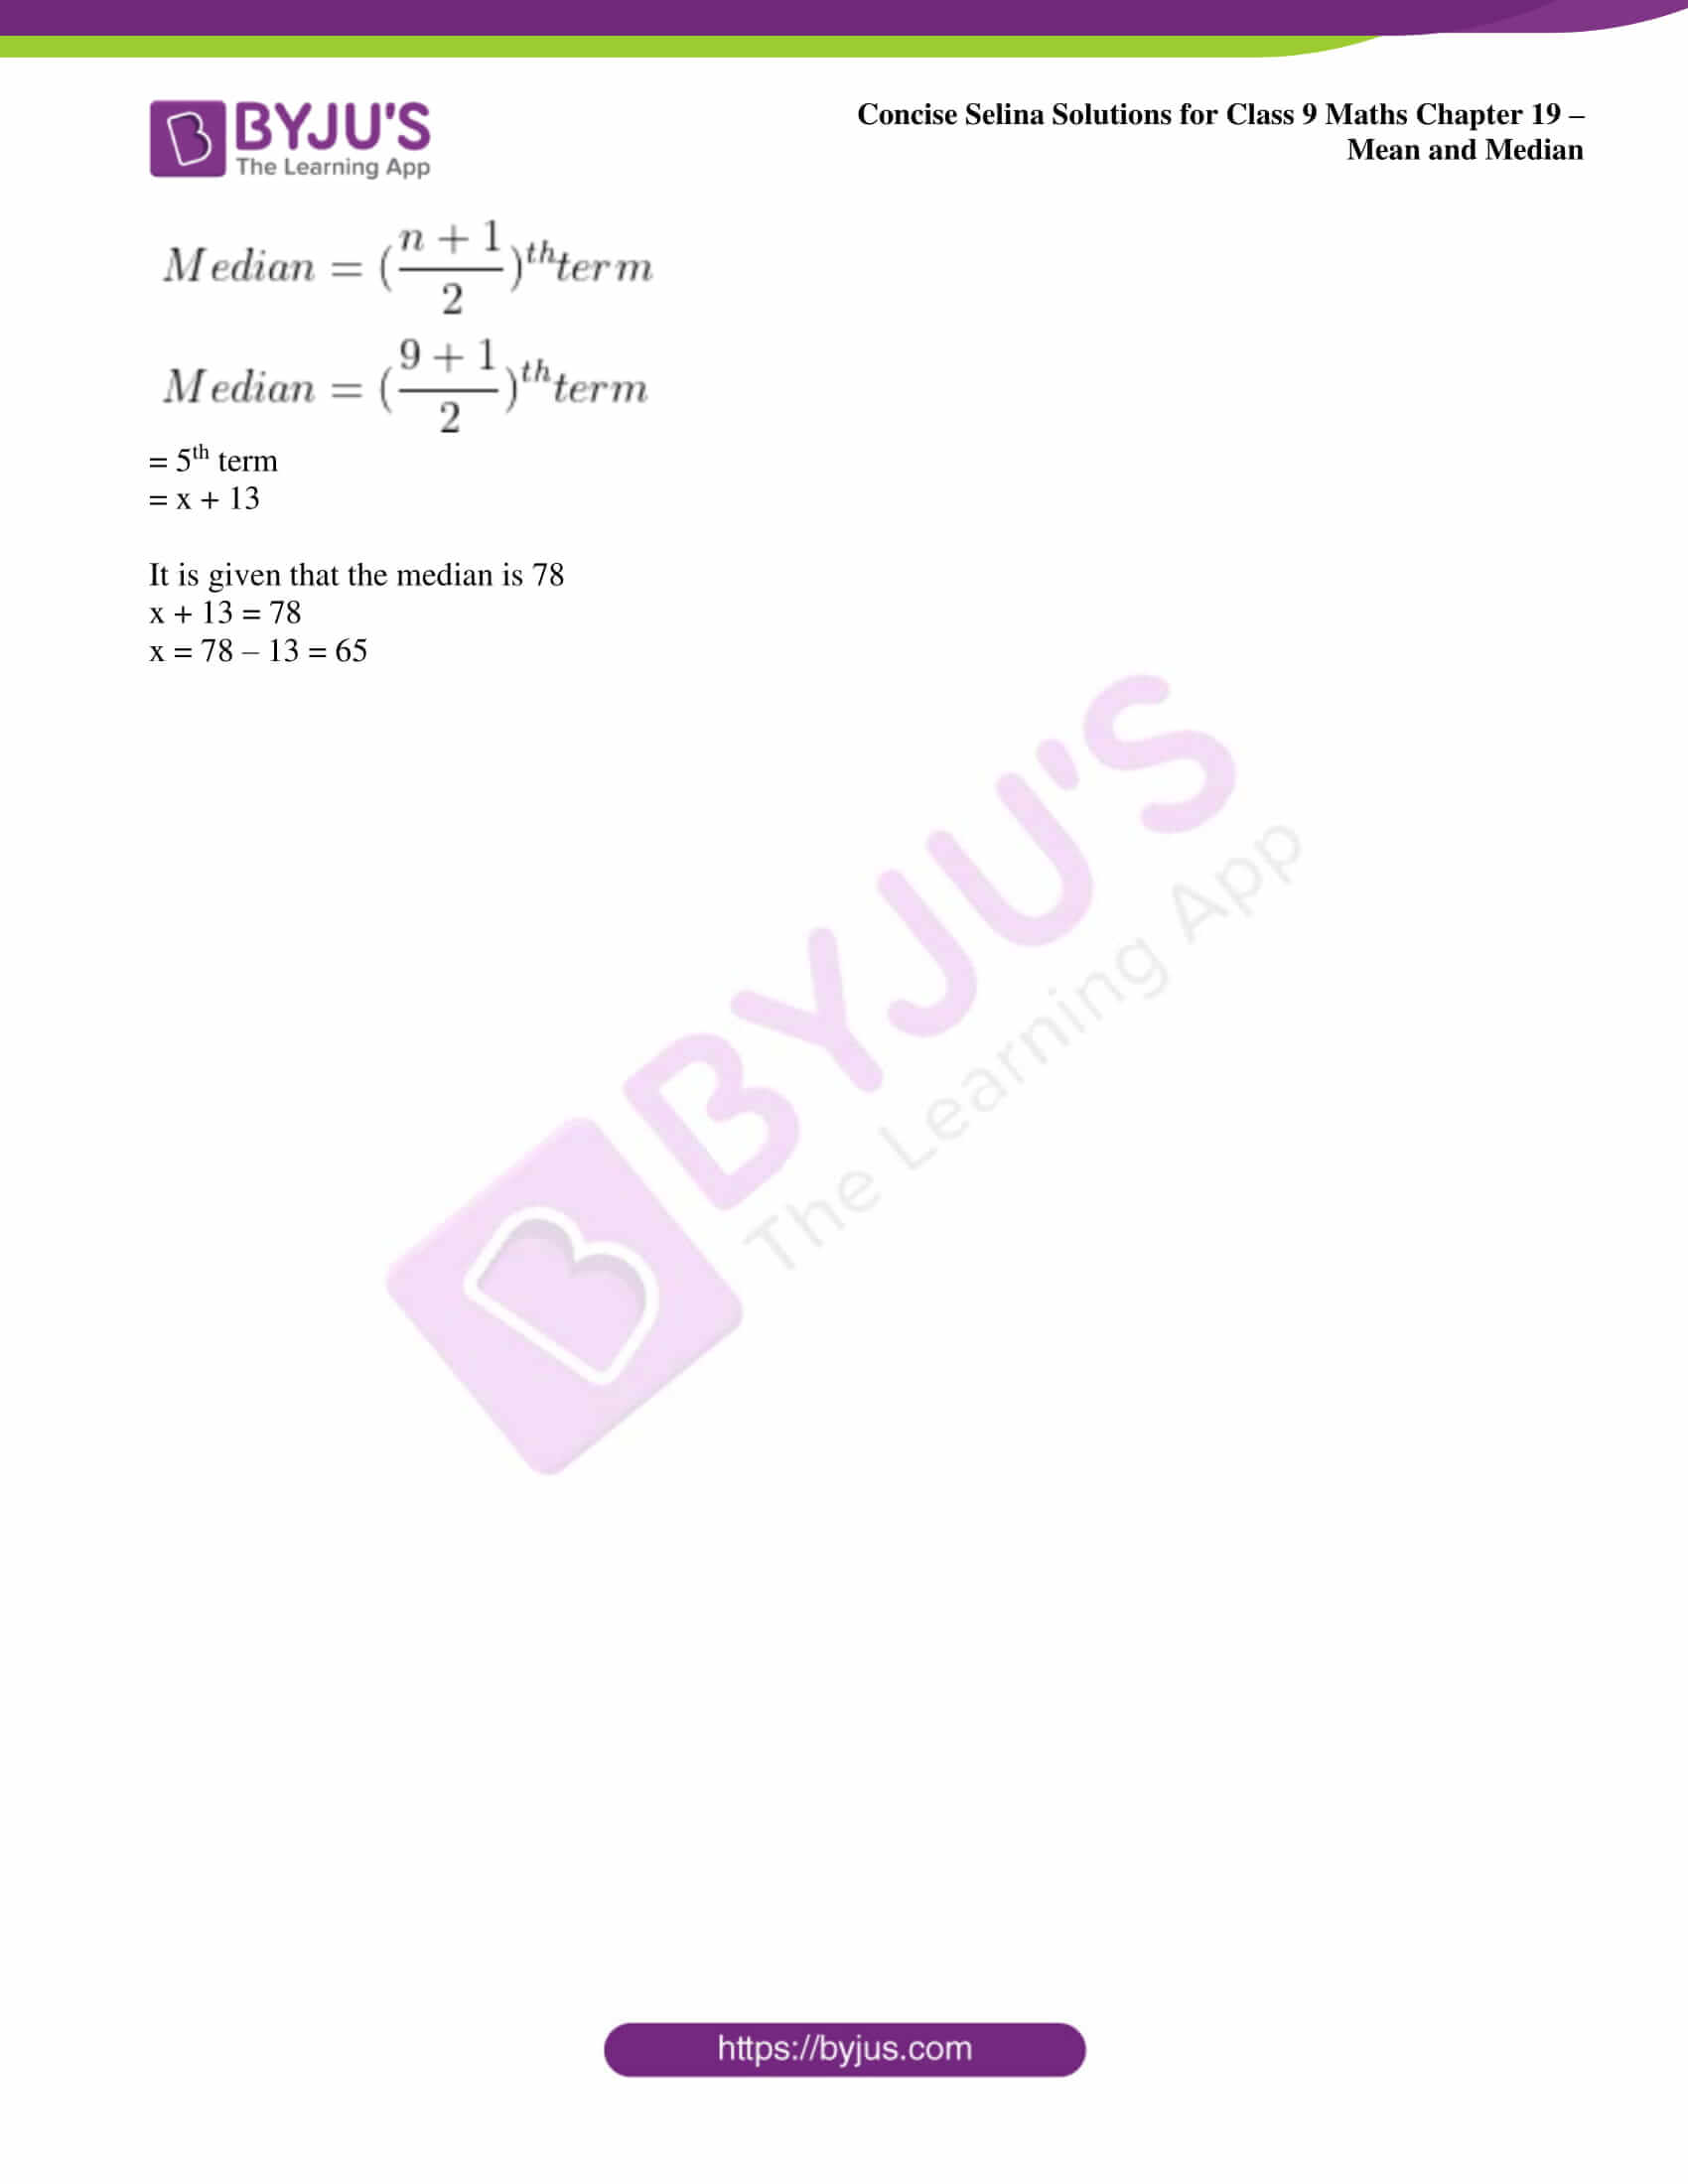 icse class 9 maths may10 selina solutions chapter 19 mean and median 12